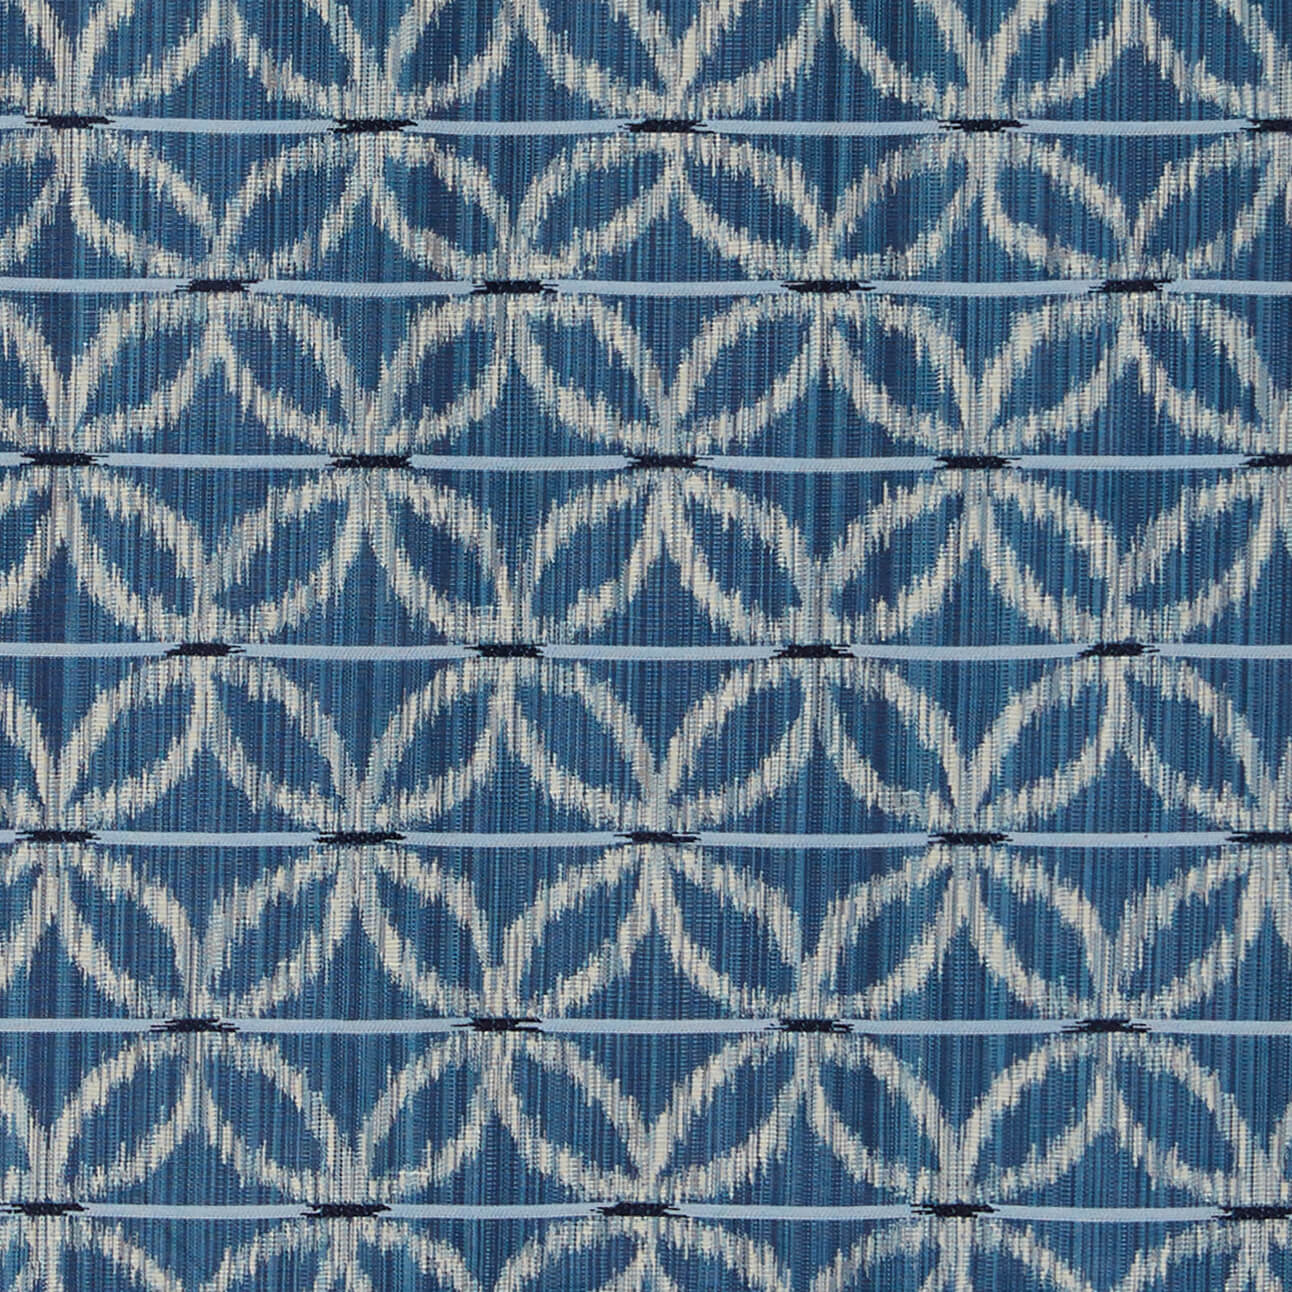 Floral Ikat Fabric in Ocean Blue